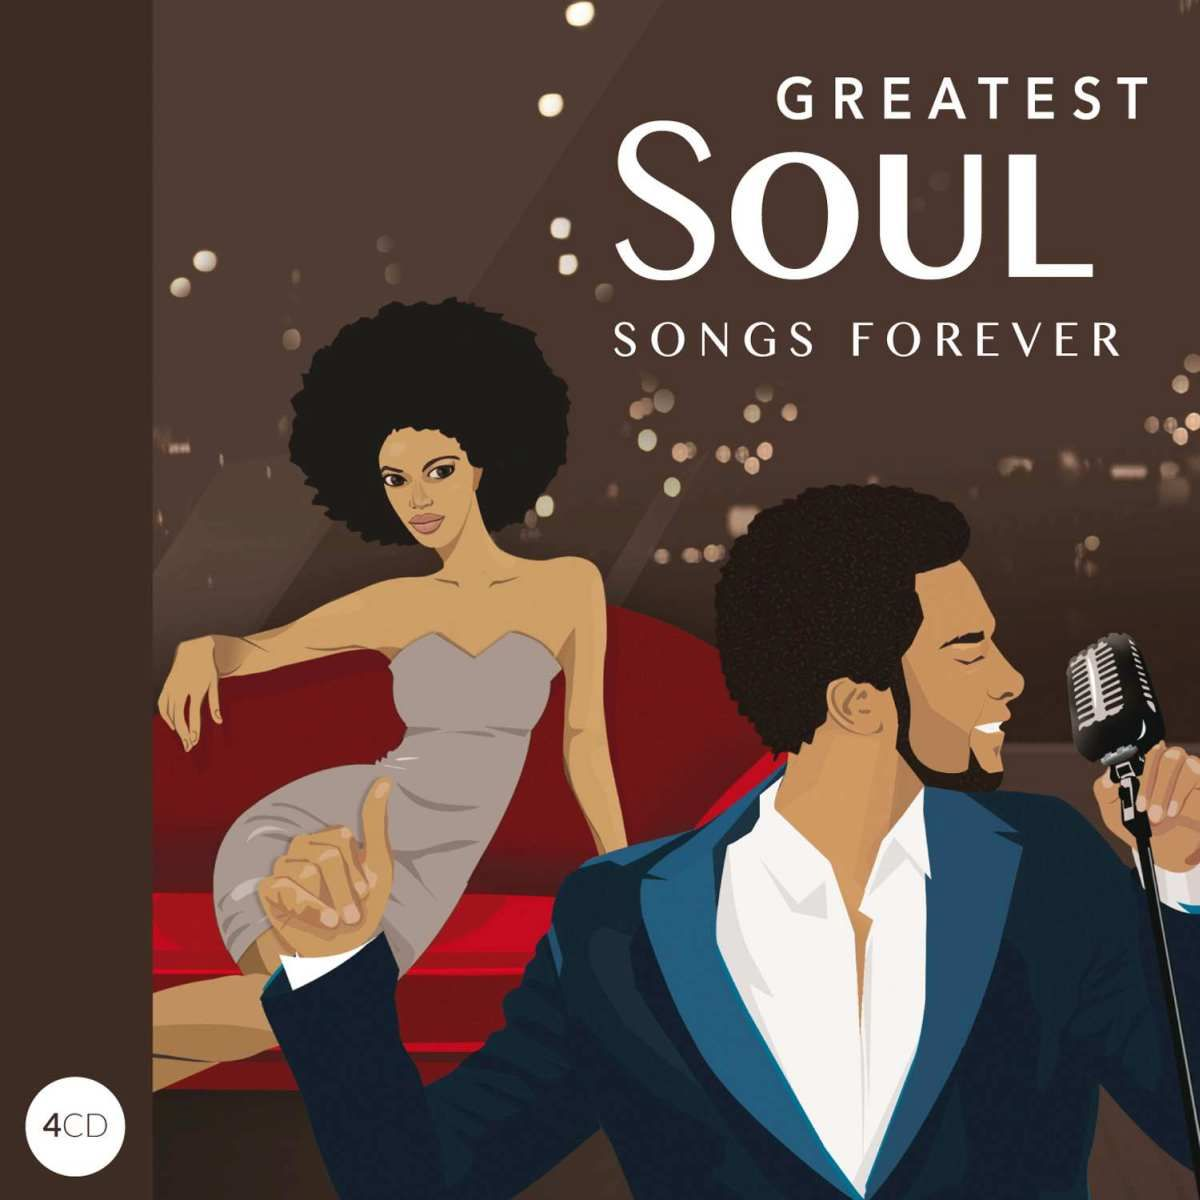 Greatest Soul Songs Forever